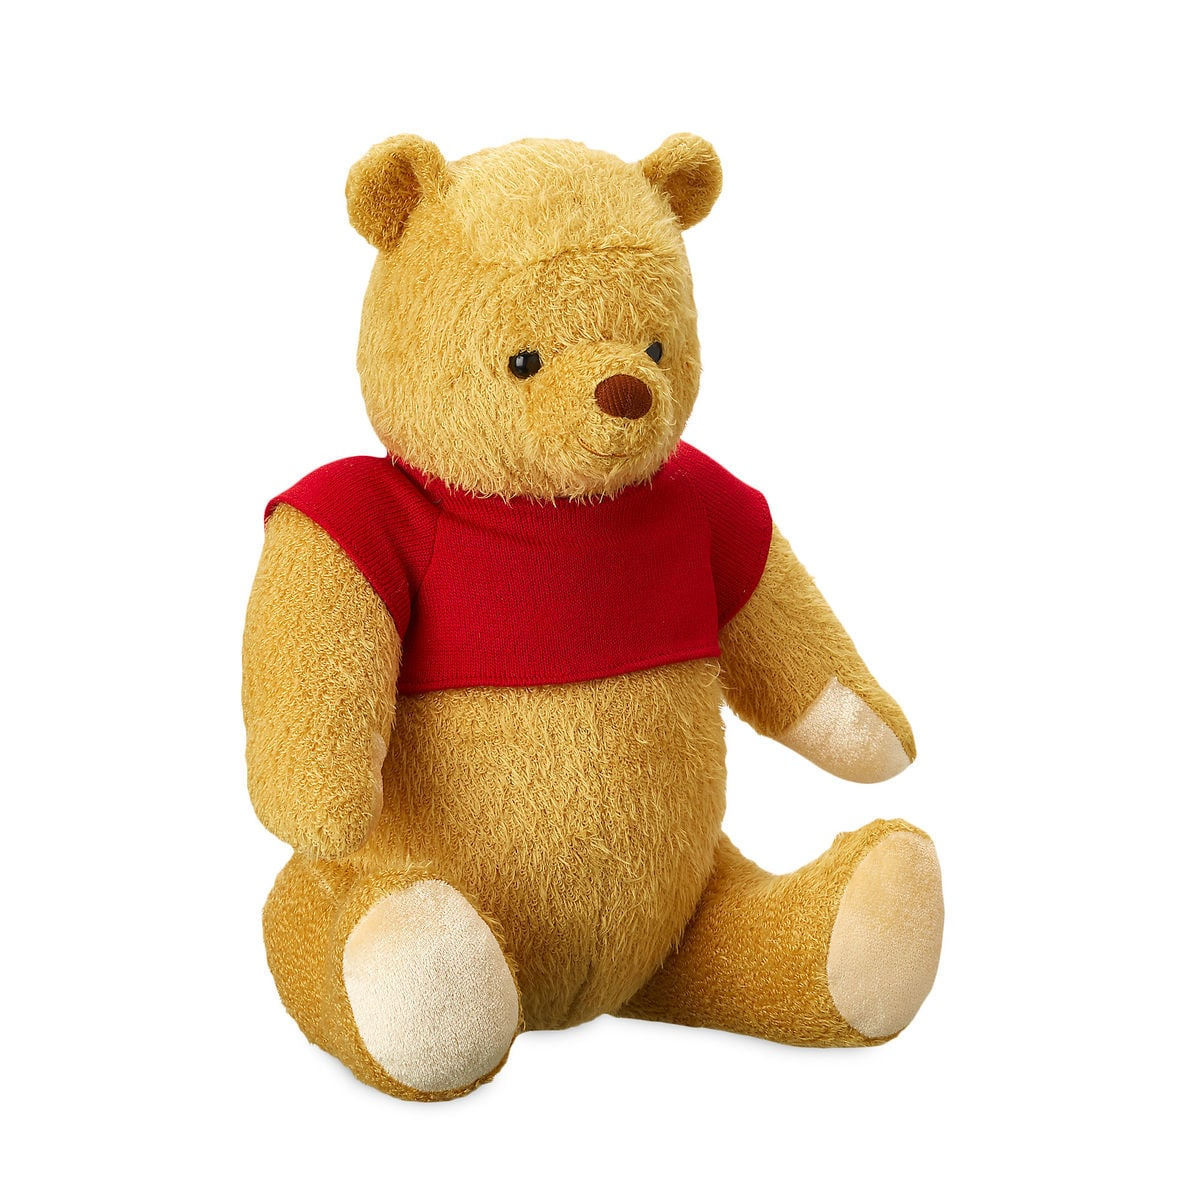 Product Image of Winnie the Pooh Plush - Christopher Robin - Medium   1 d9dc74fc00d8